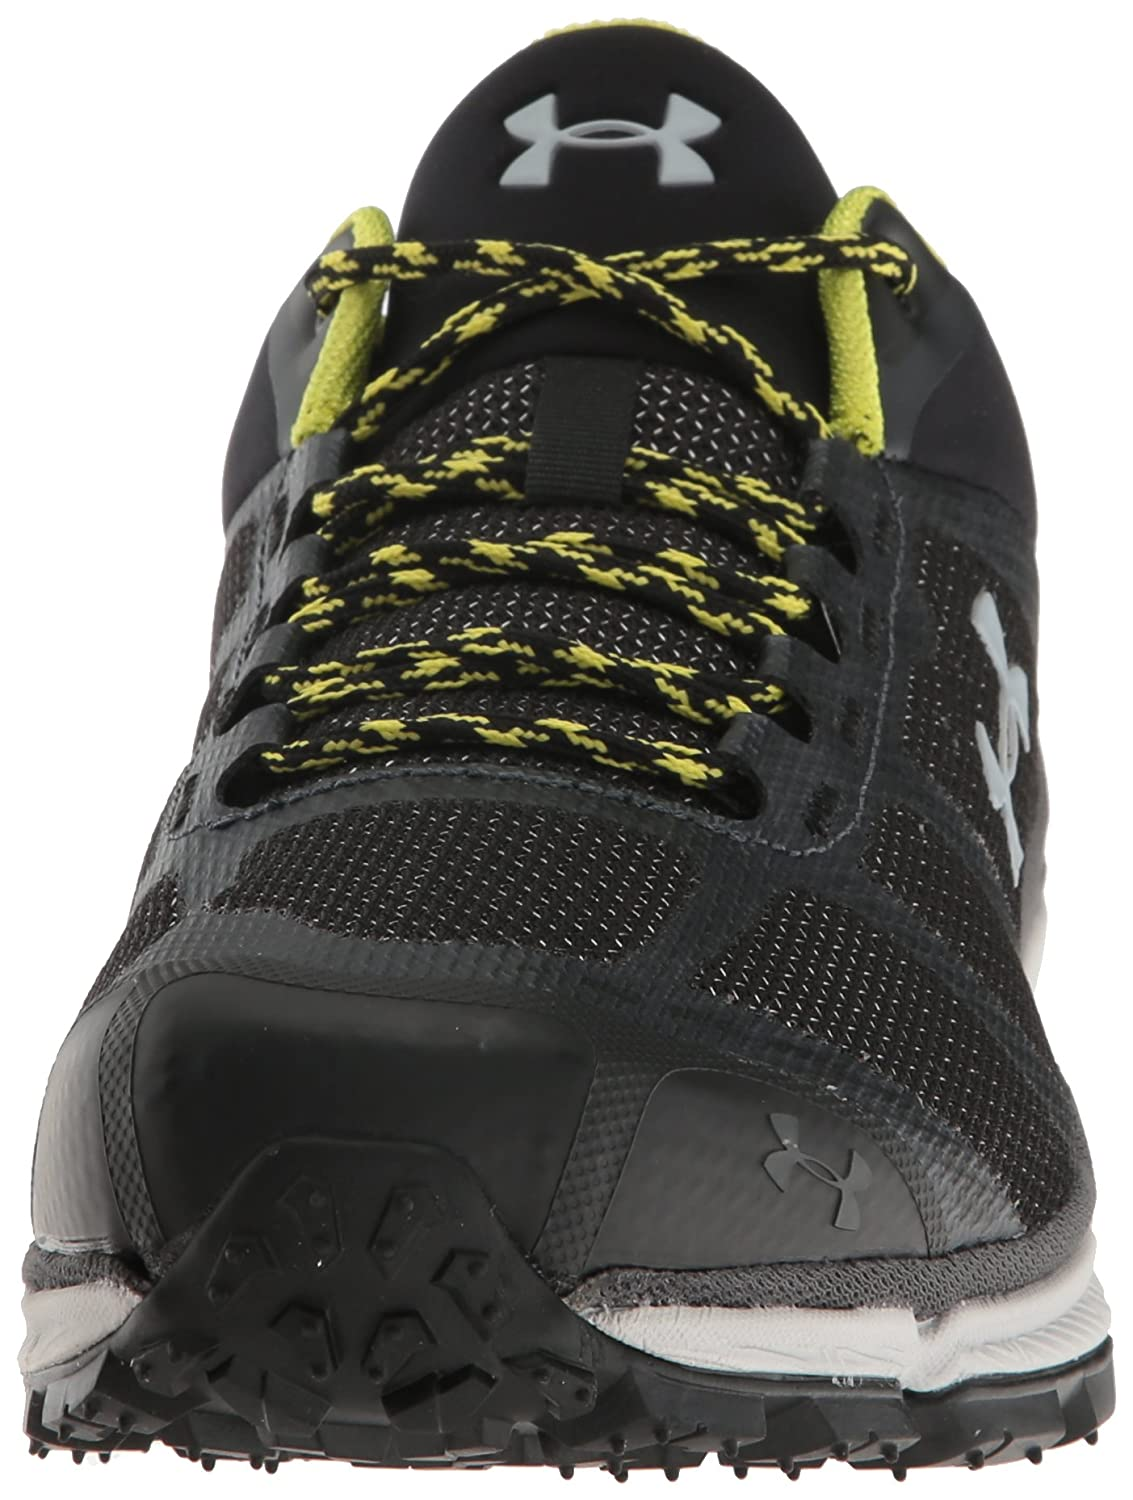 Under Armour M Men's Verge Low Hiking Boot B01GPDT71I 9 M Armour US|Black (002)/Stealth Gray d8940c